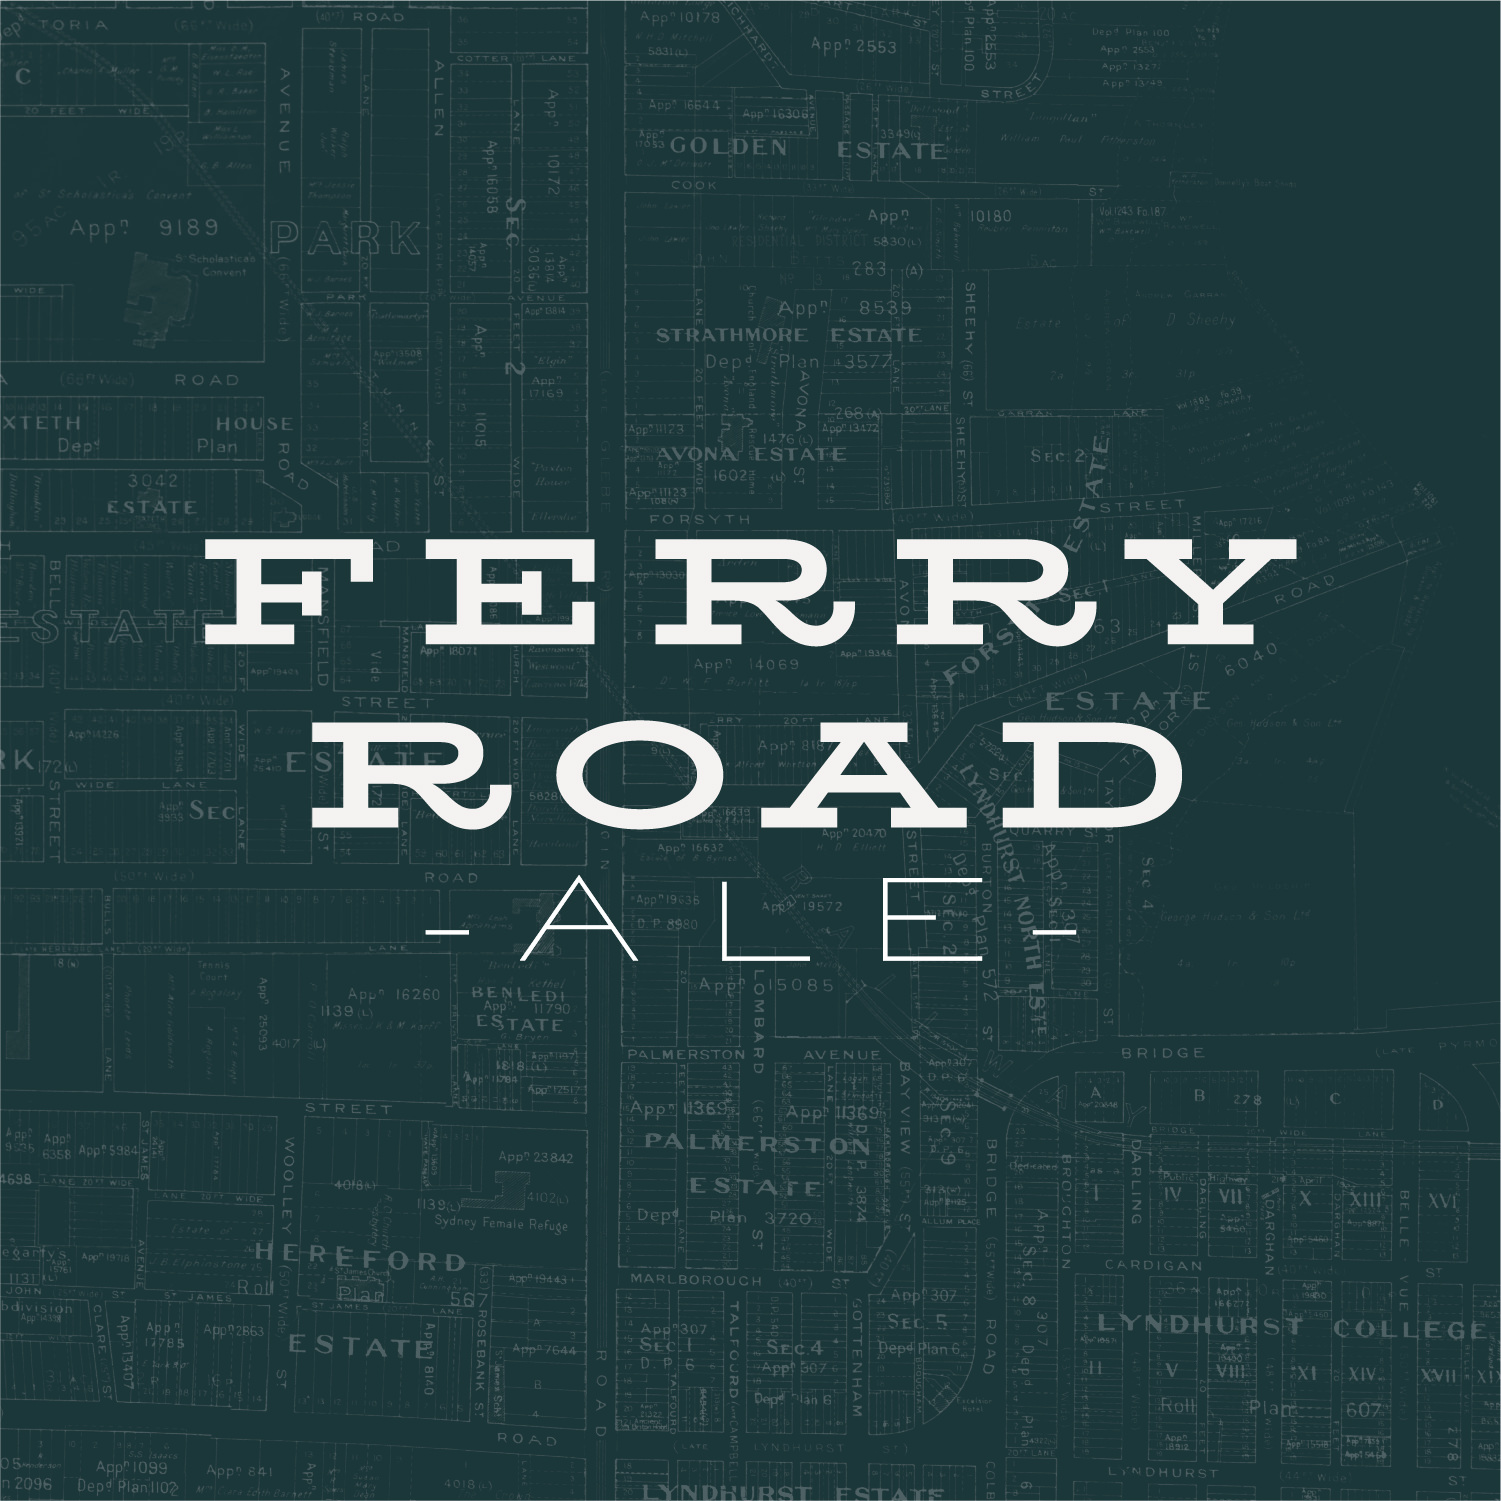 FERRY ROAD ALE